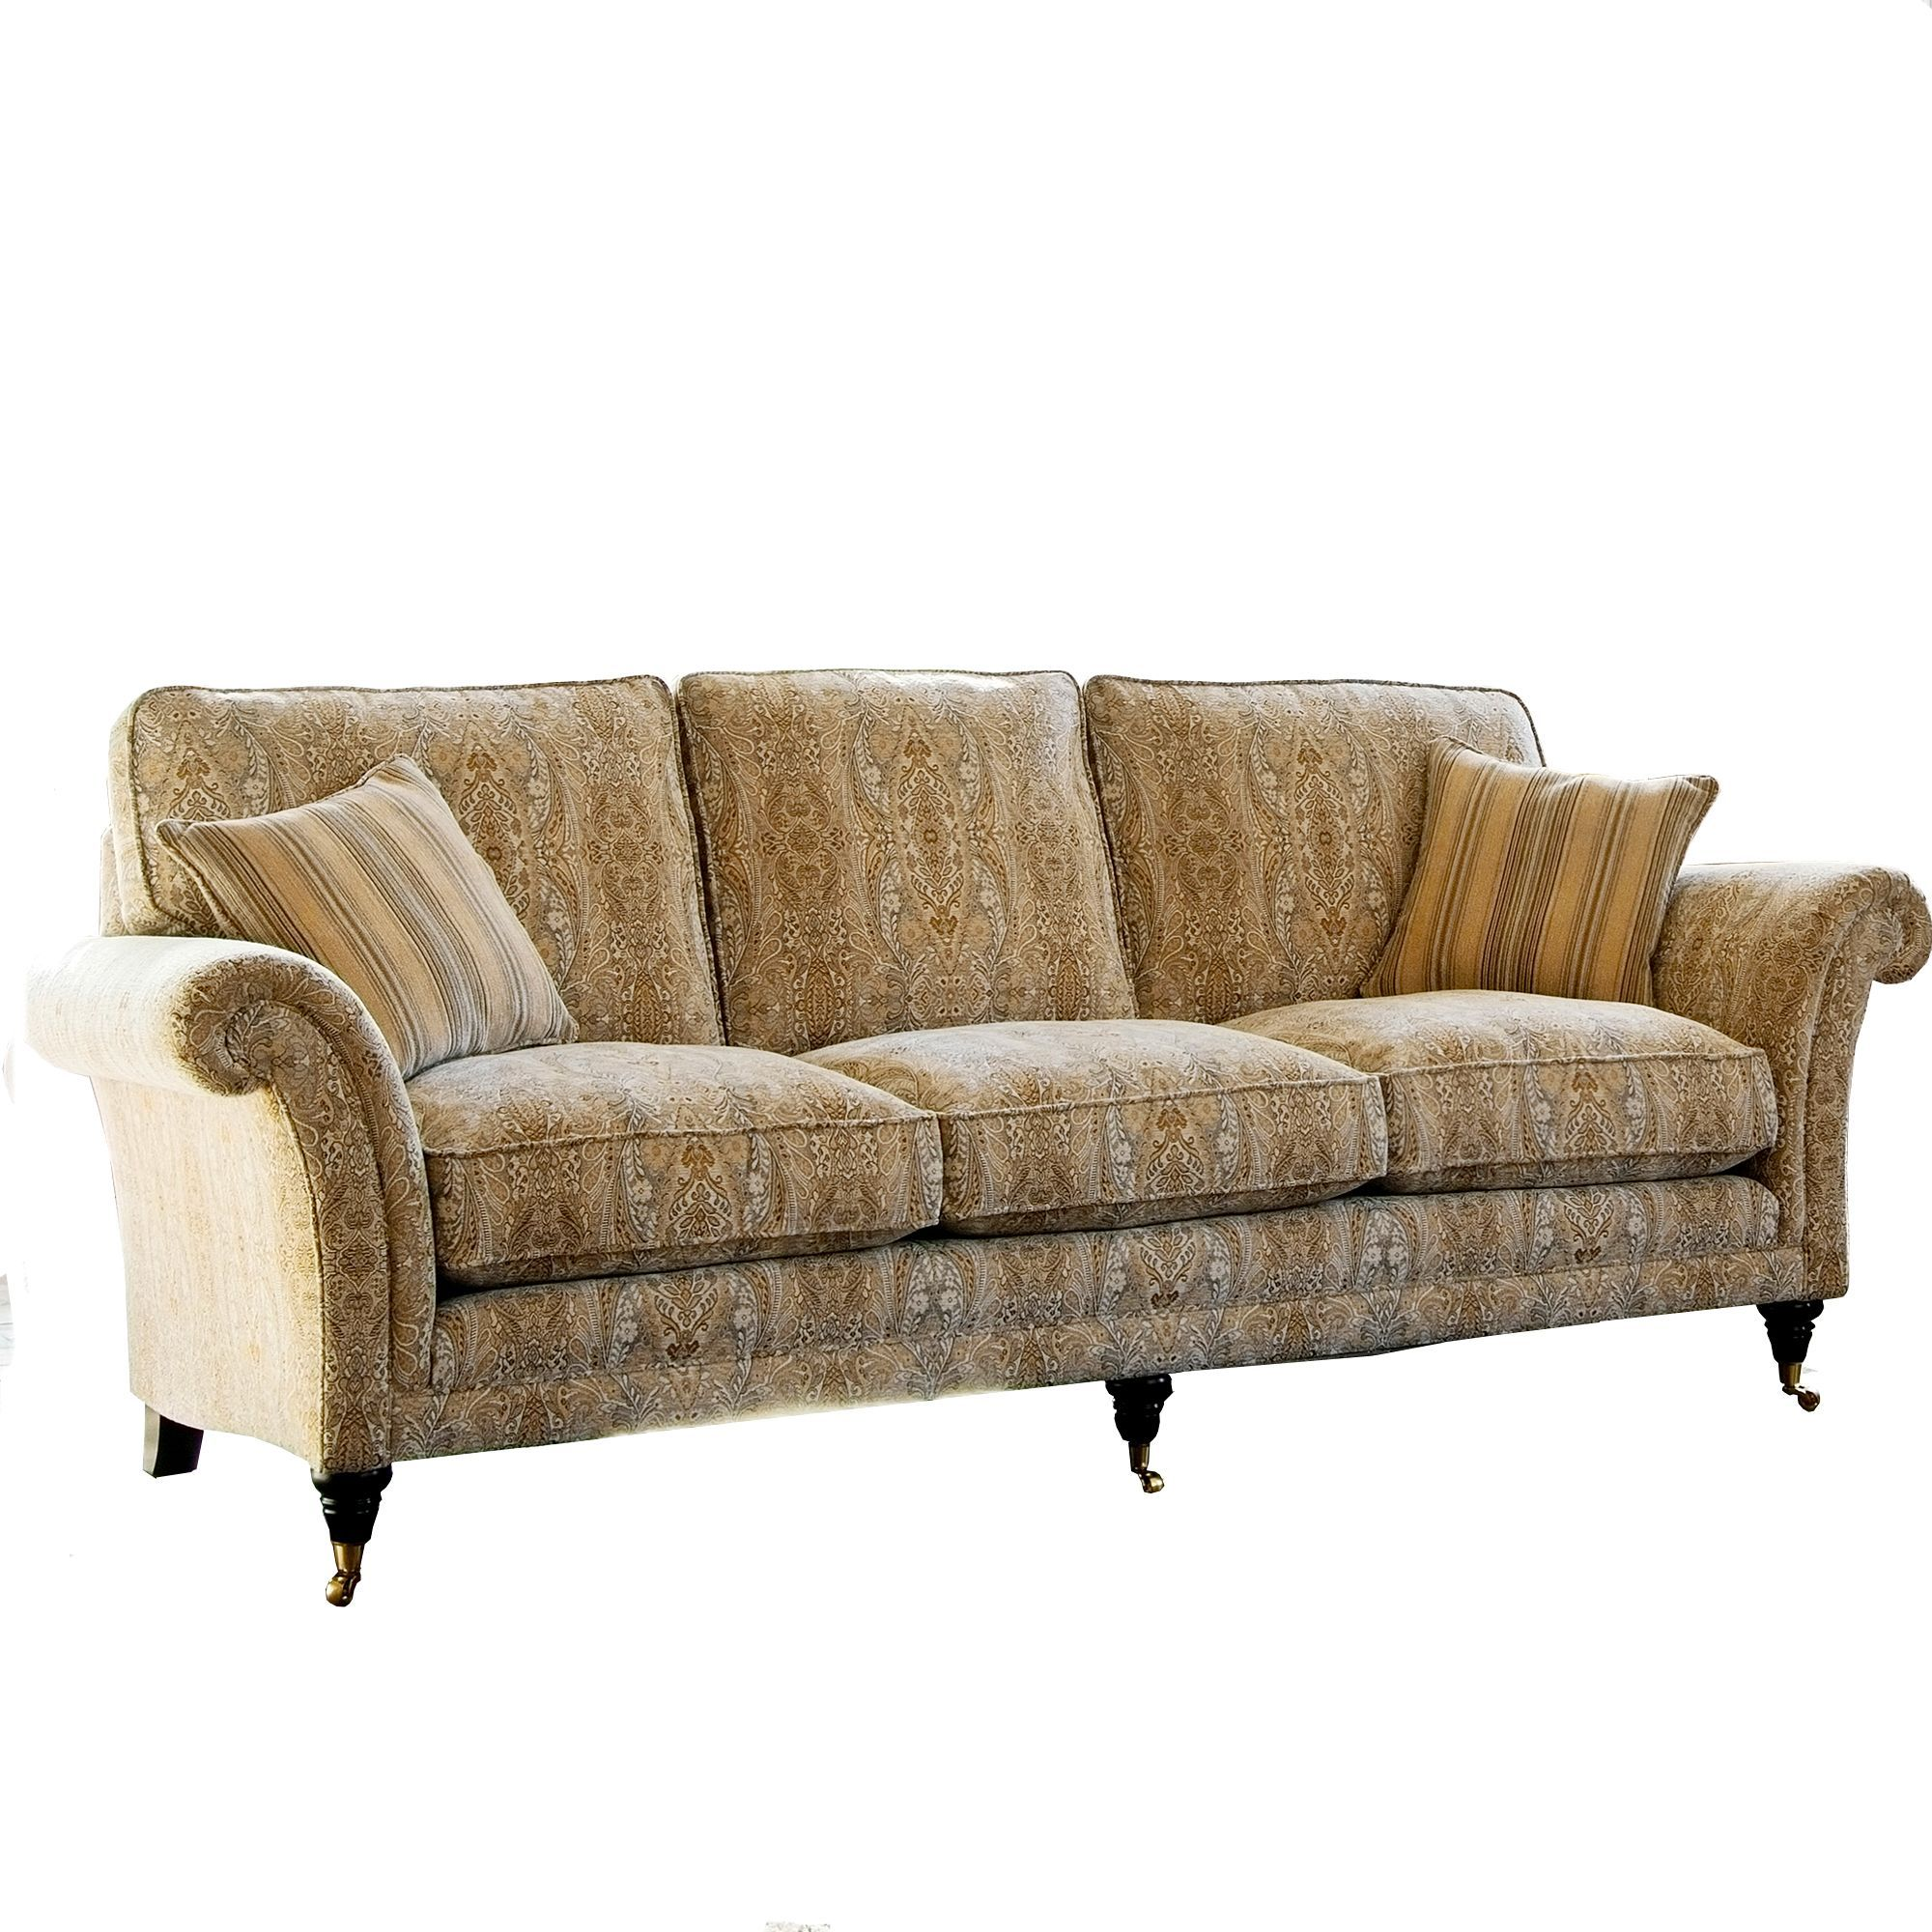 Sofaland Glasgow 100 Sofas Leather Uk Sofas Center Wood And Leather Sofas Sofas Uk